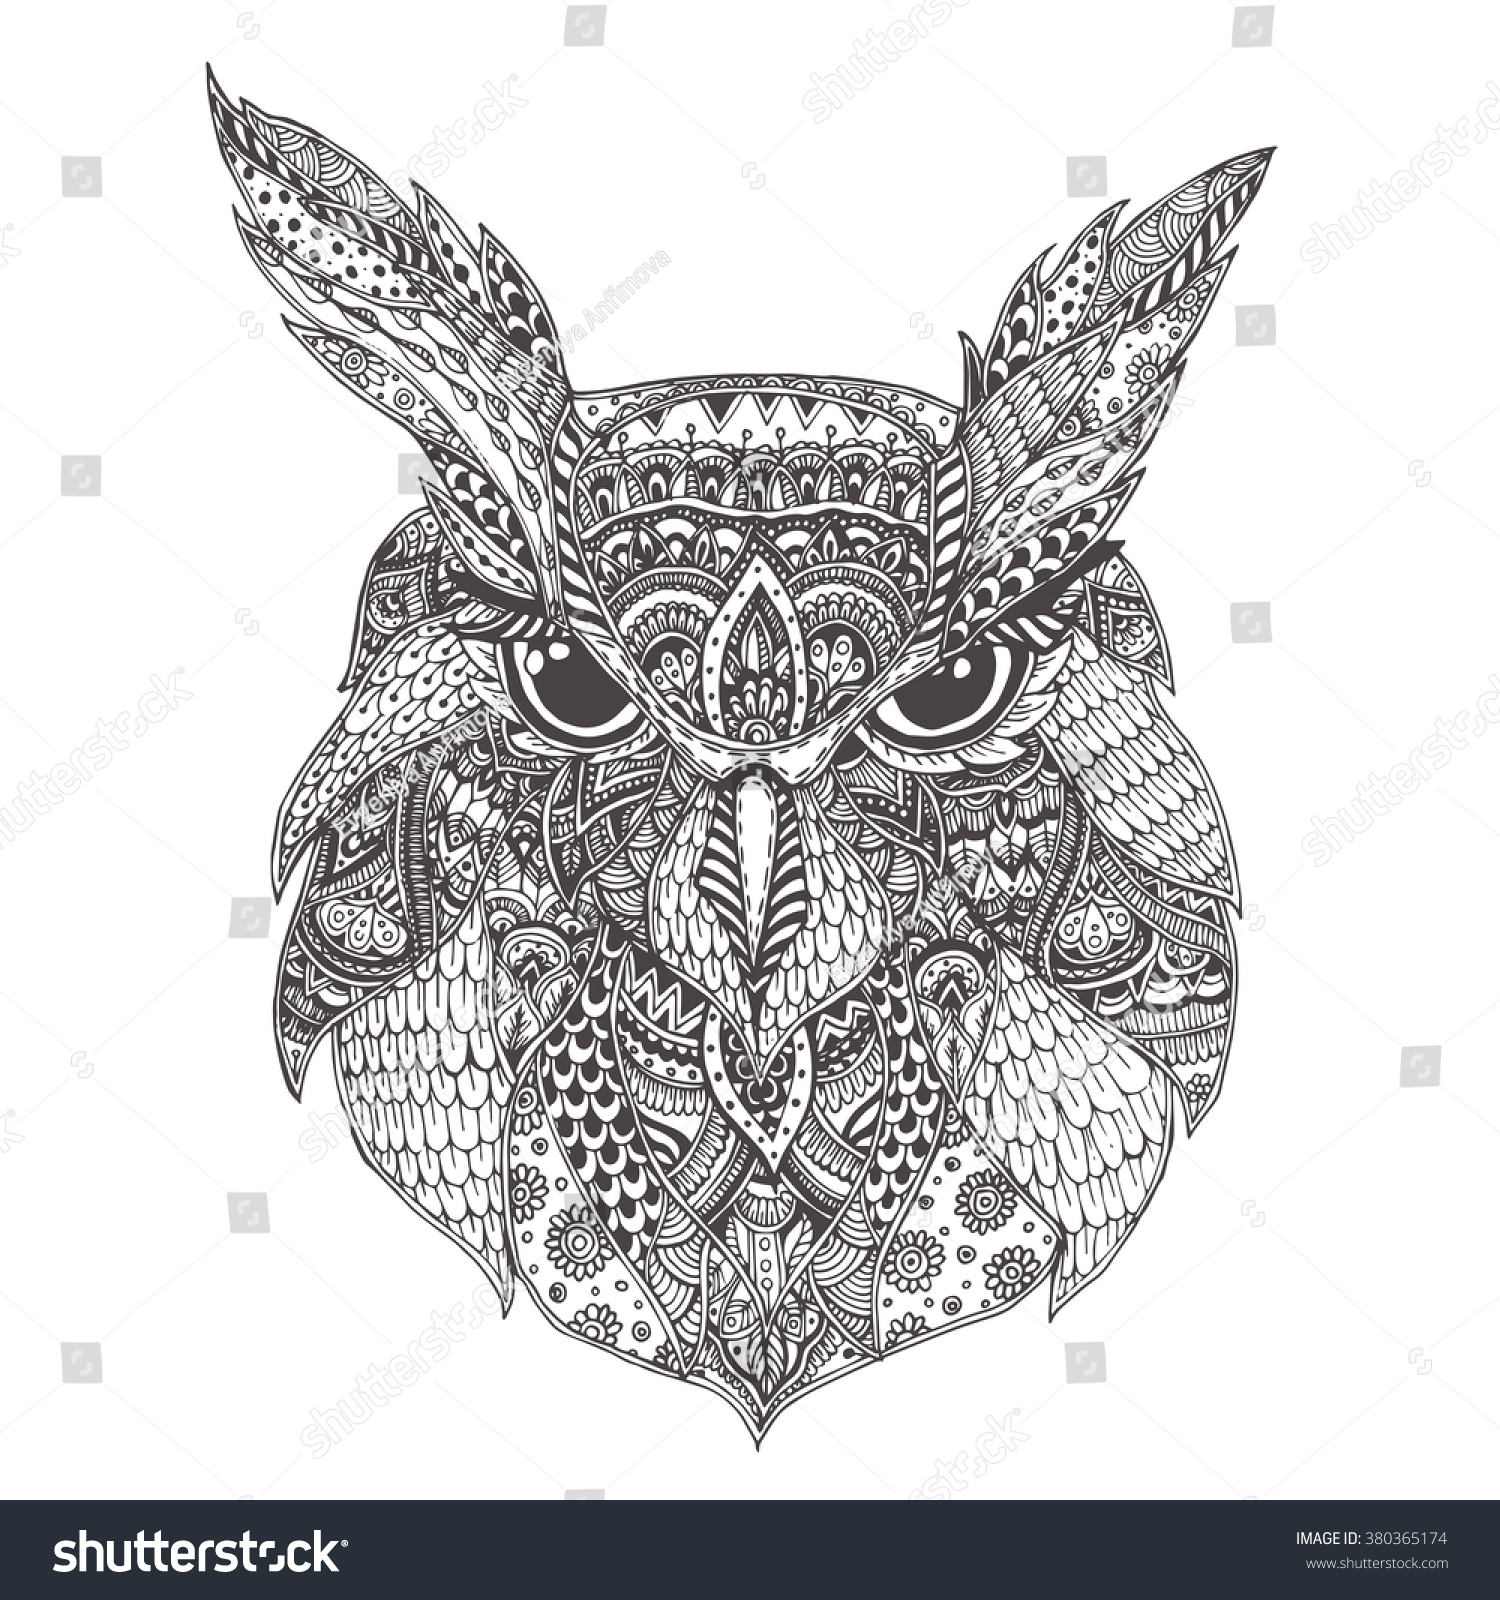 Handdrawn Owl Ethnic Floral Doodle Pattern Stock Vector (Royalty ... | 1600x1500